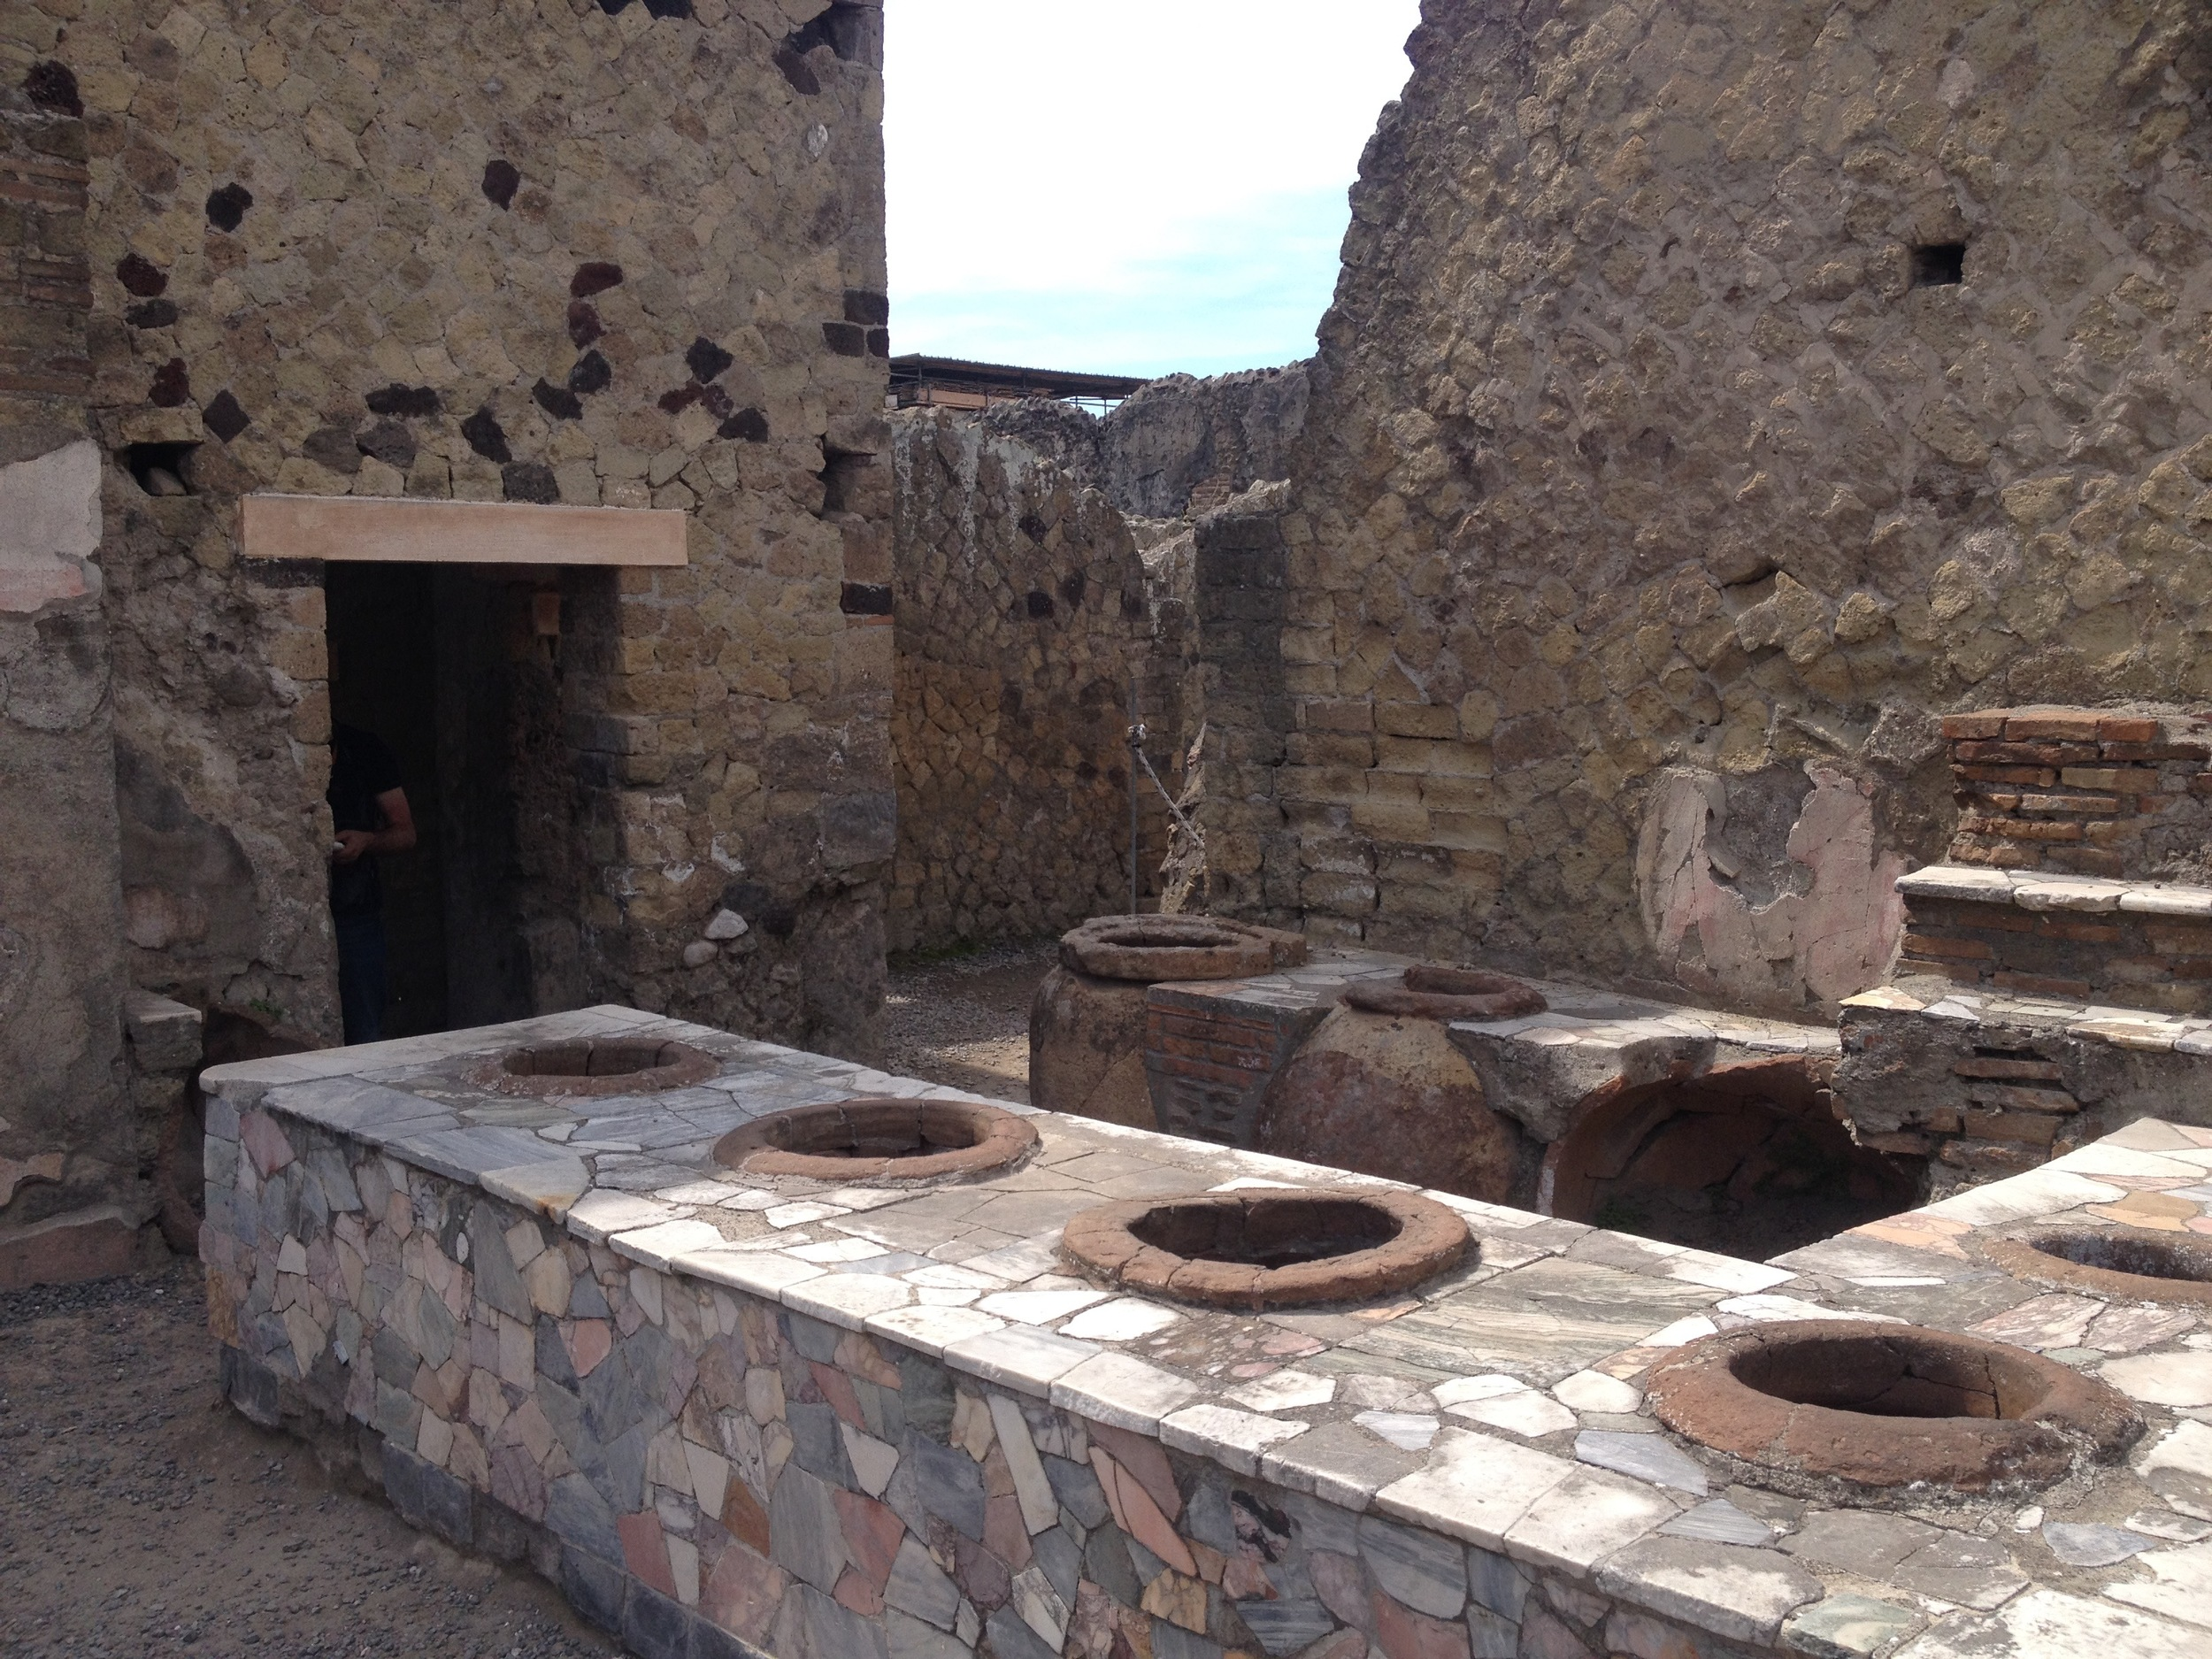 We complain about the ubiquitous fast food stands, but even in the years BC, fast food places were everywhere. Above is one of many snack bars in Herculaneum, the various large urns built into the counters no doubt serving up the Big Macs and french fries of the day.